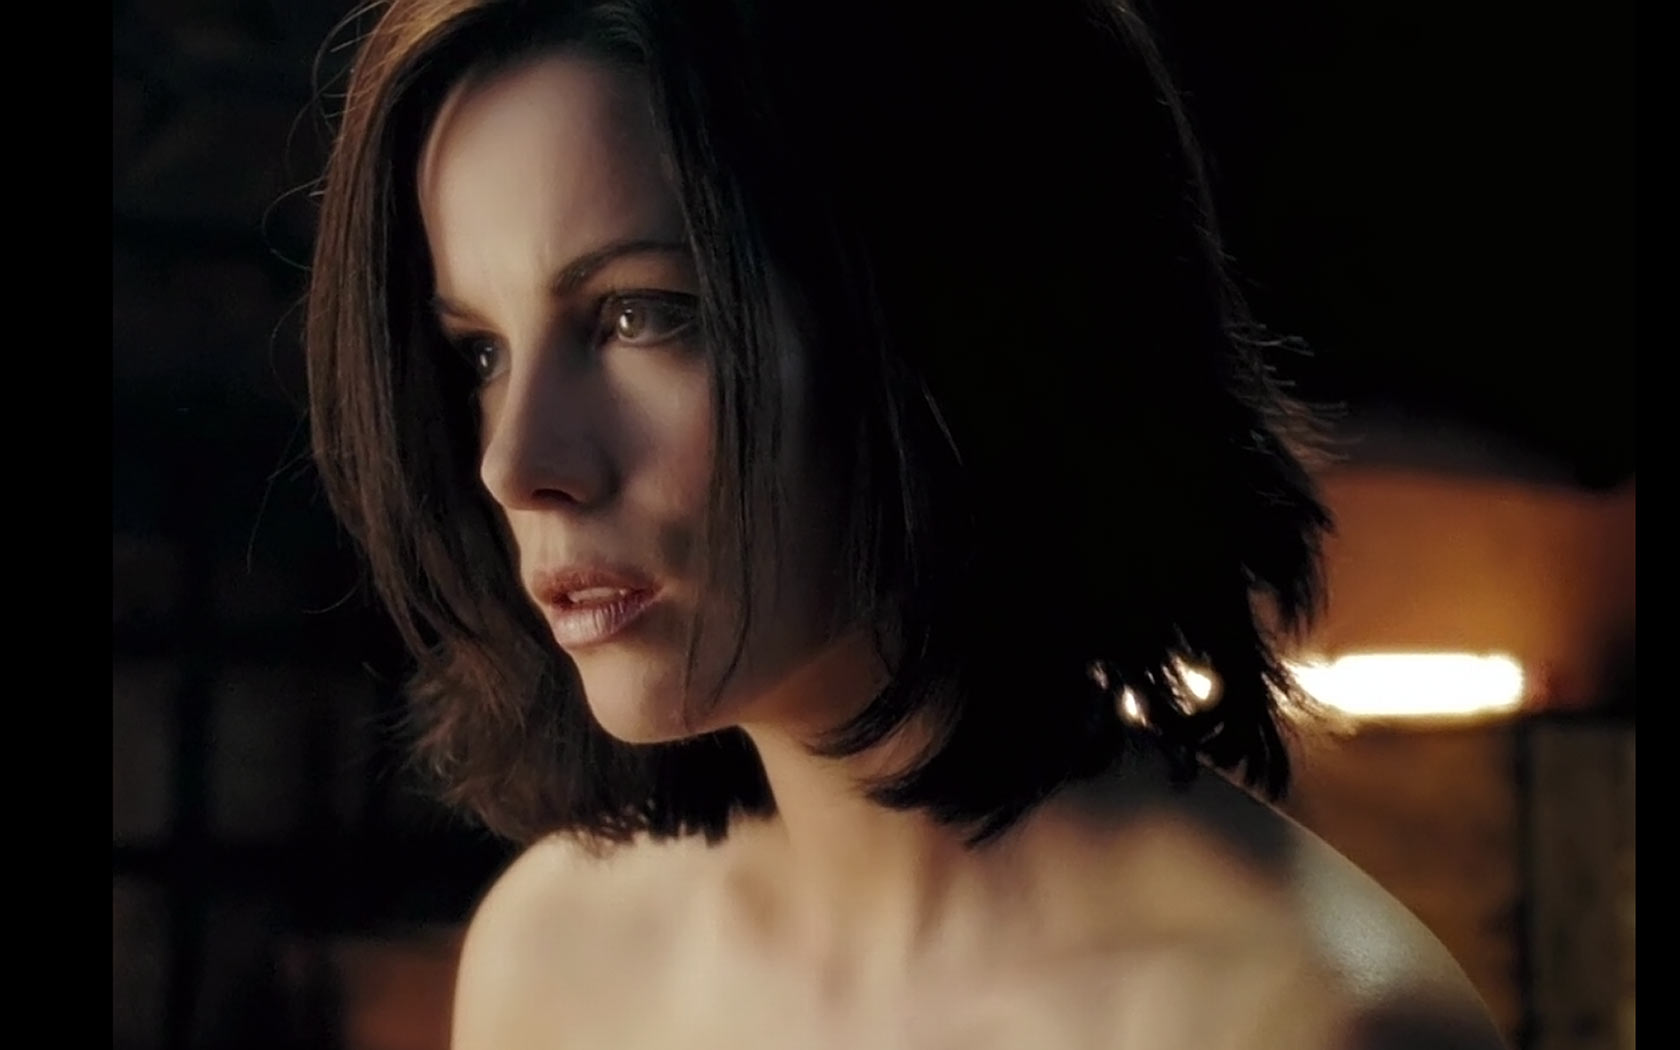 kate beckensale topless gif